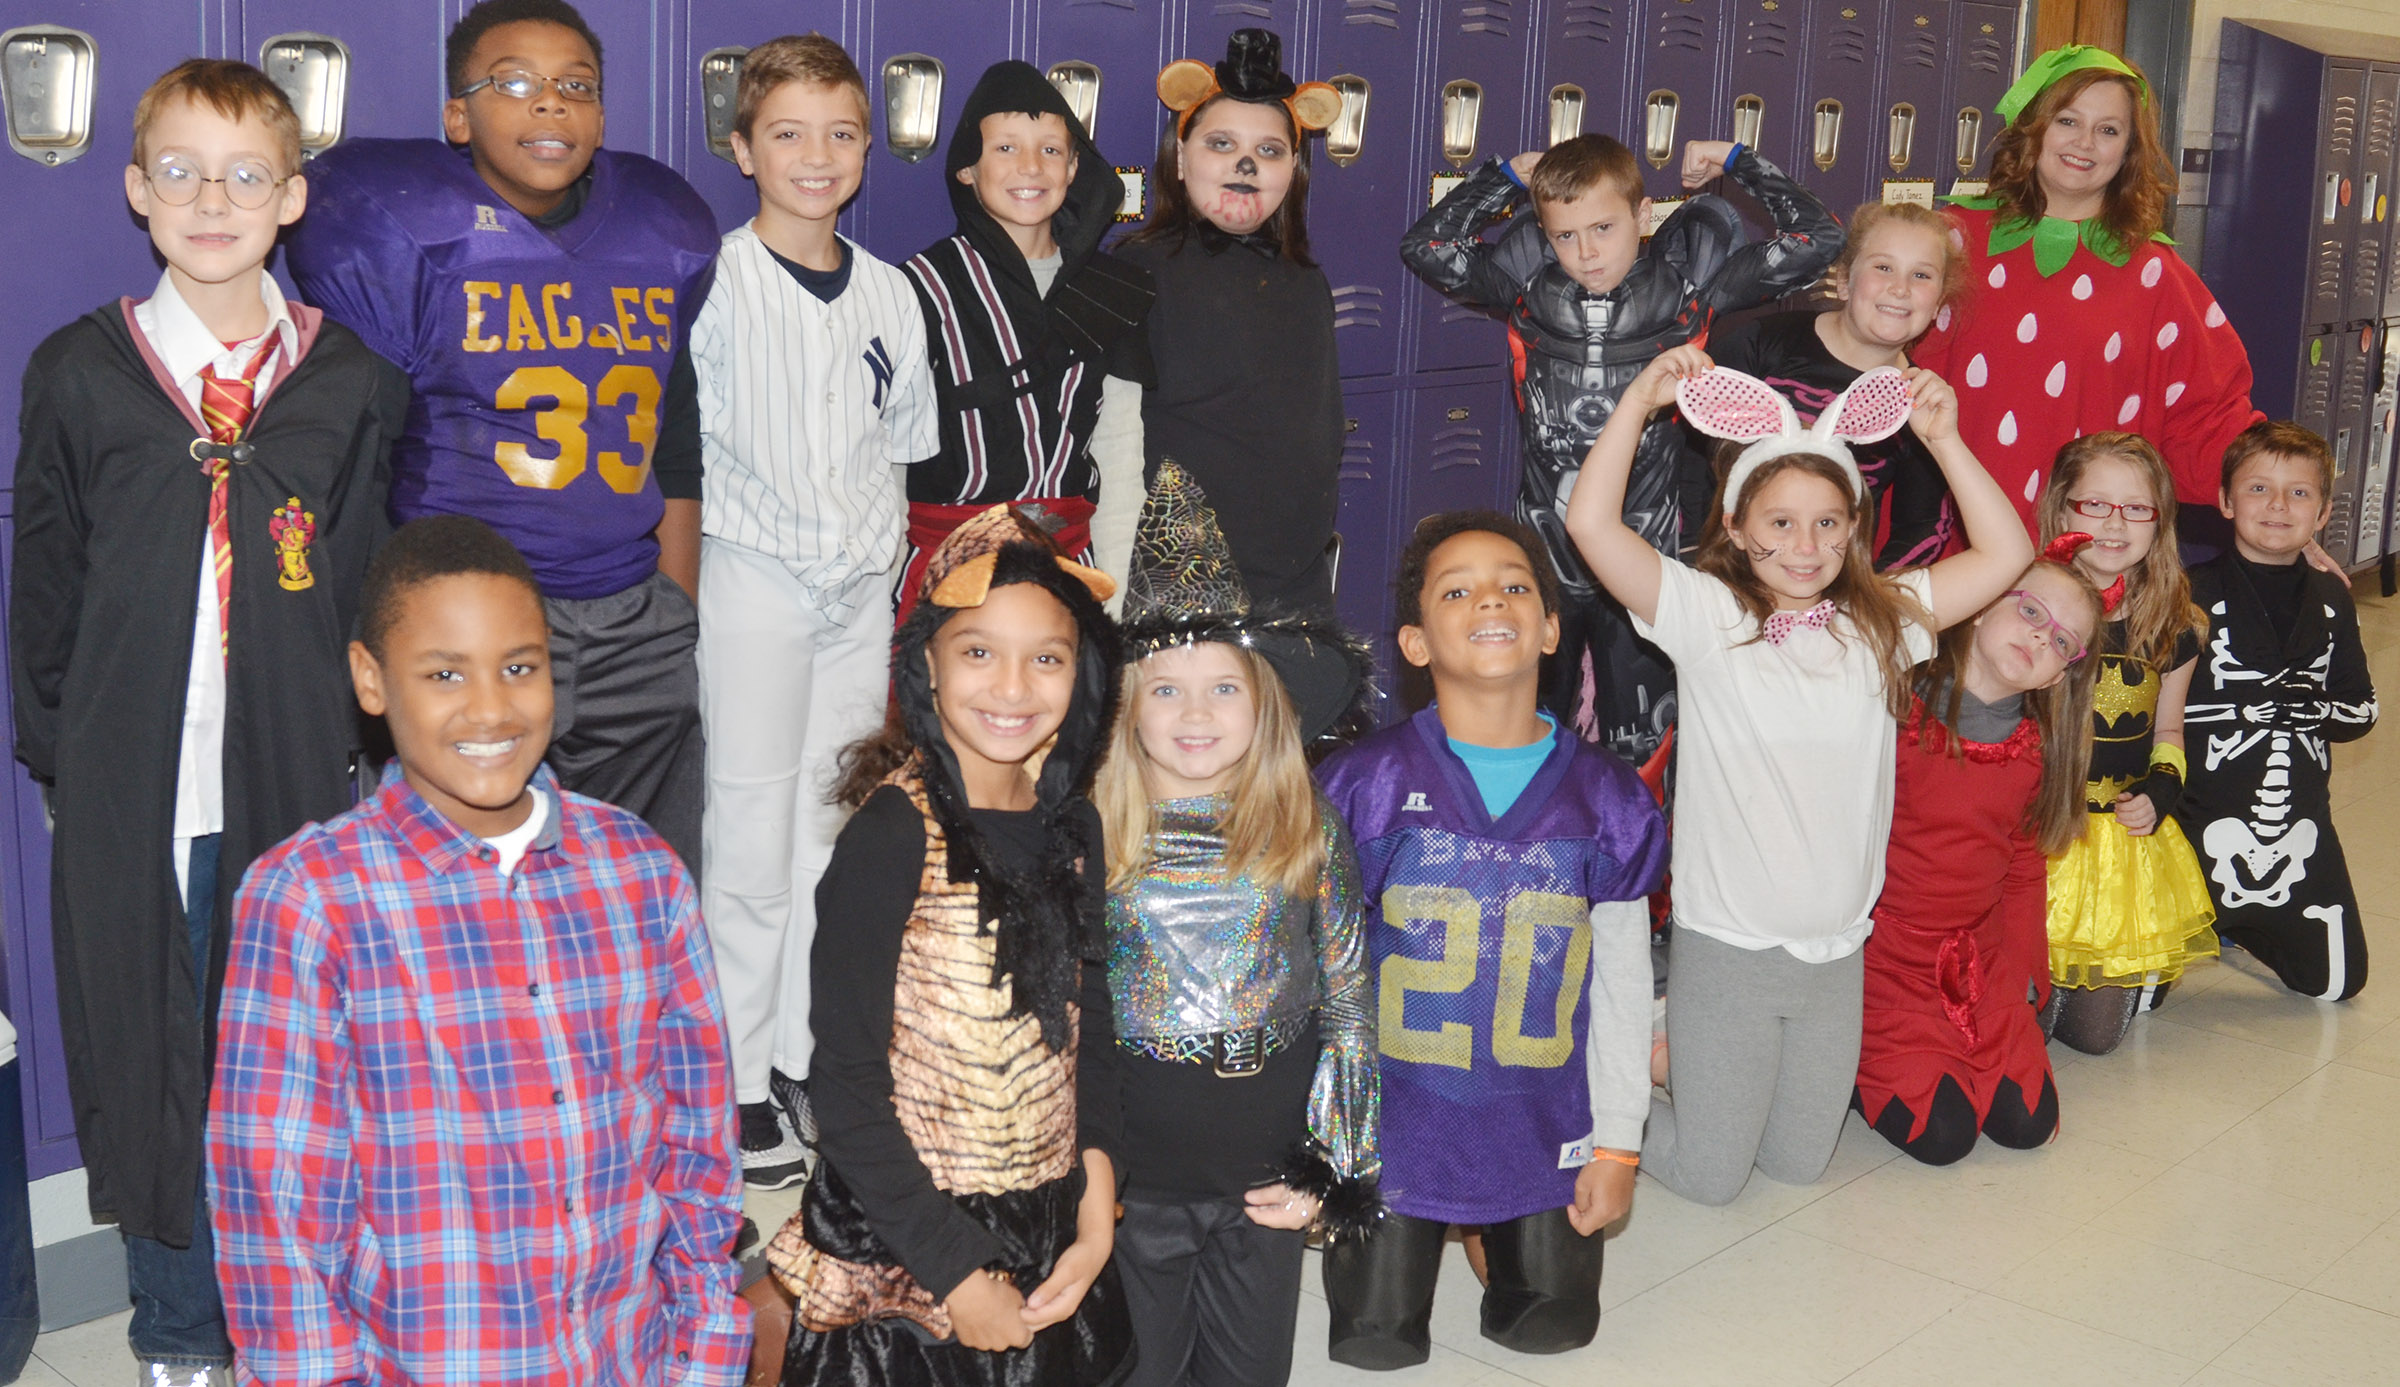 CES students wear their Halloween costumes to raise money for cystic fibrosis research.